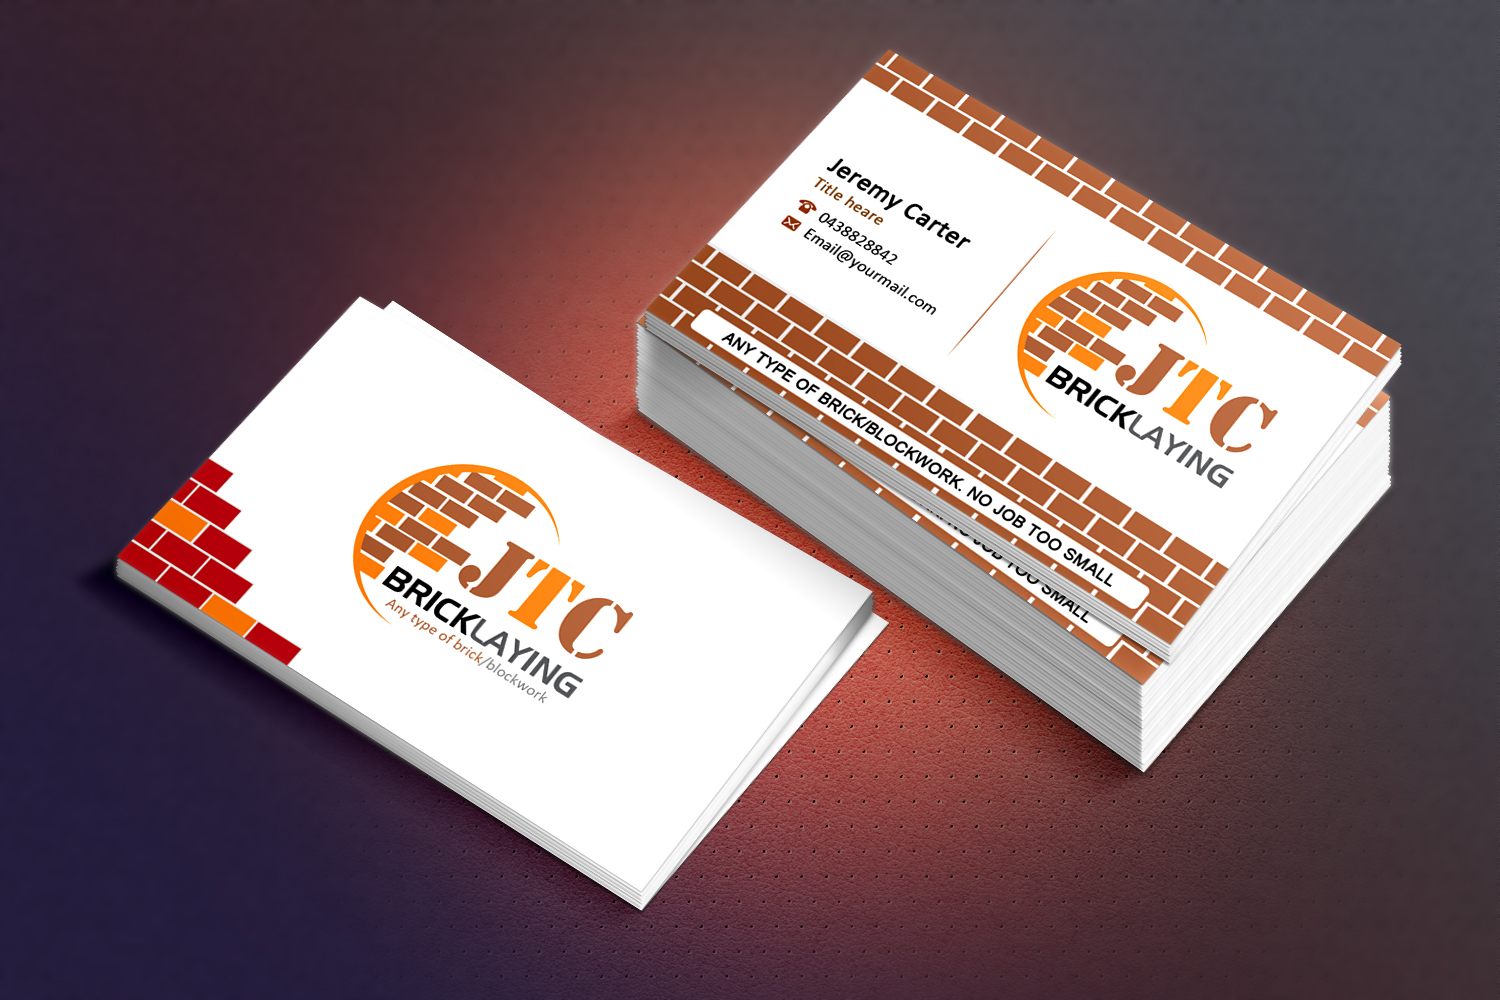 Business Business Card Design for a Company by Sandaruwan | Design ...